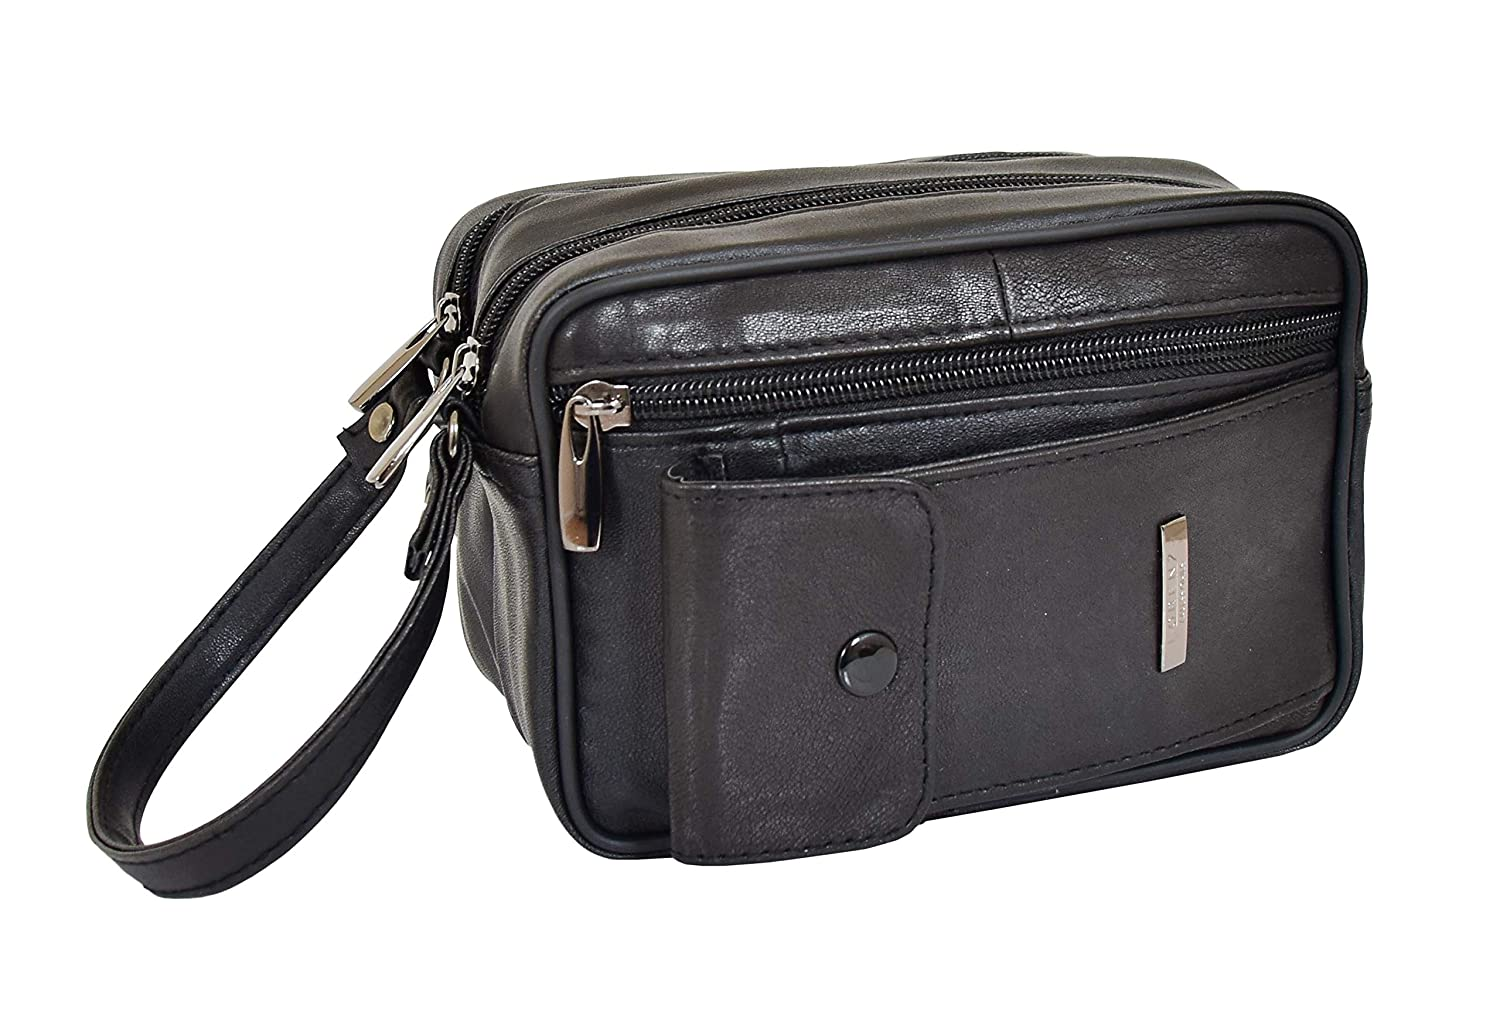 Gents Real Leather Wrist Bag Clutch Travel Black Cab Money Mobile Man Bag - Mason